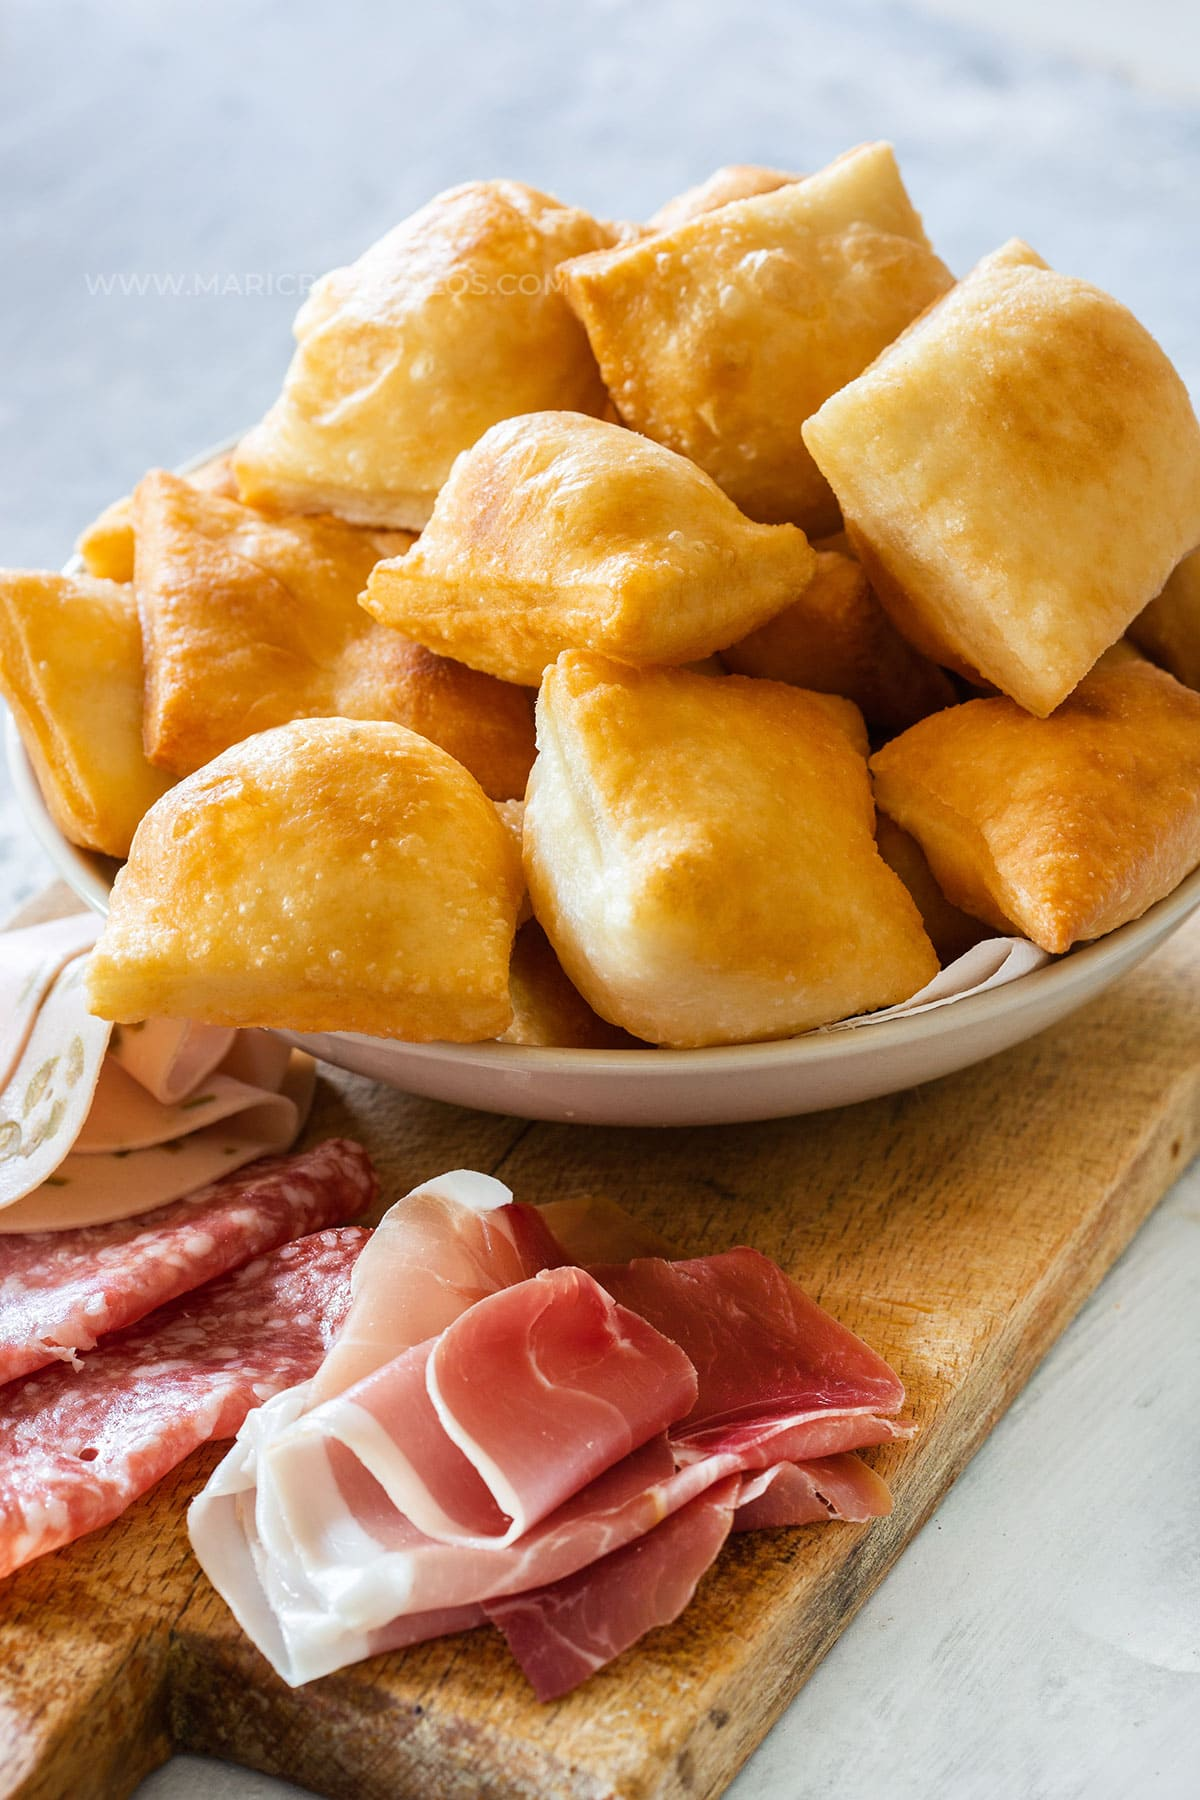 Gnocco fritto served with various cold cuts (prosciutto, salami, etc.)